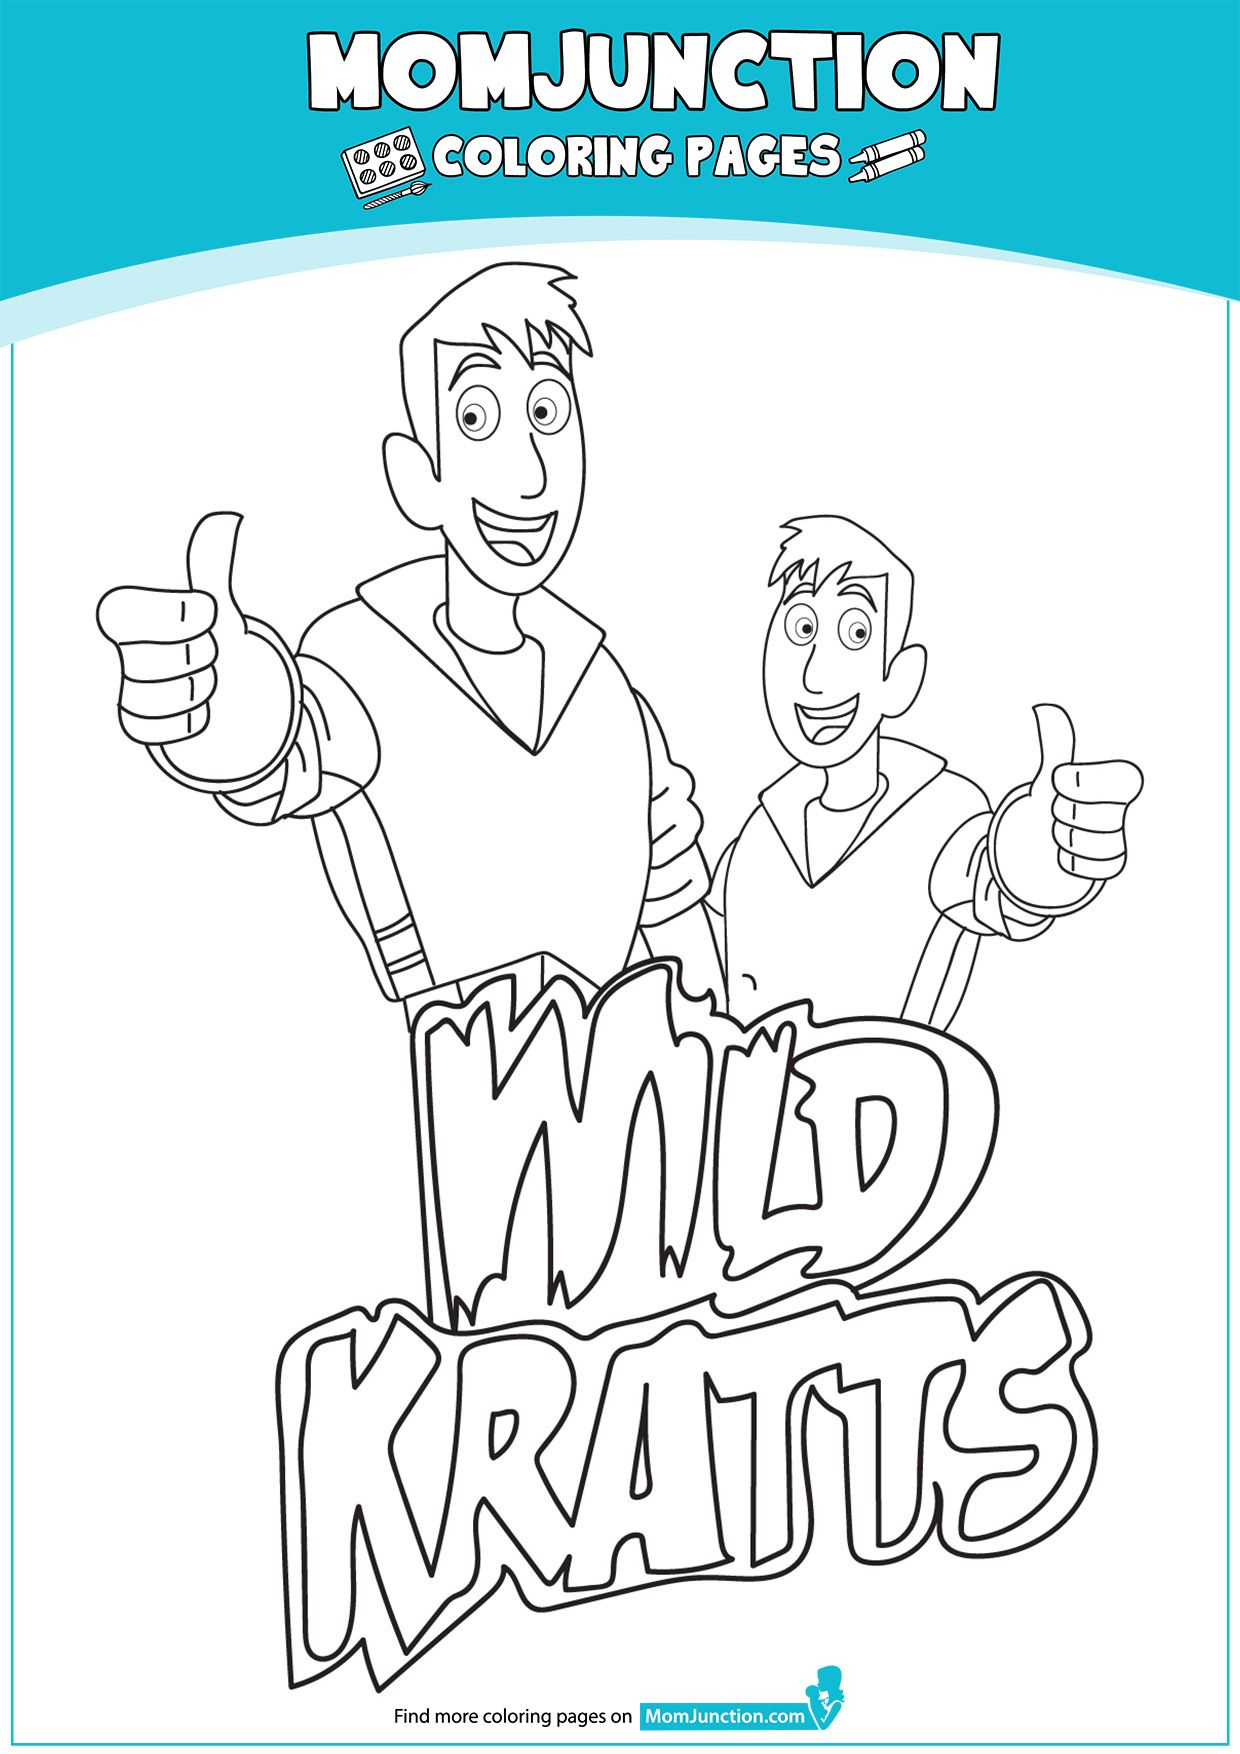 Print Coloring Image Momjunction Coloring Pages Captain America Coloring Pages Wild Kratts